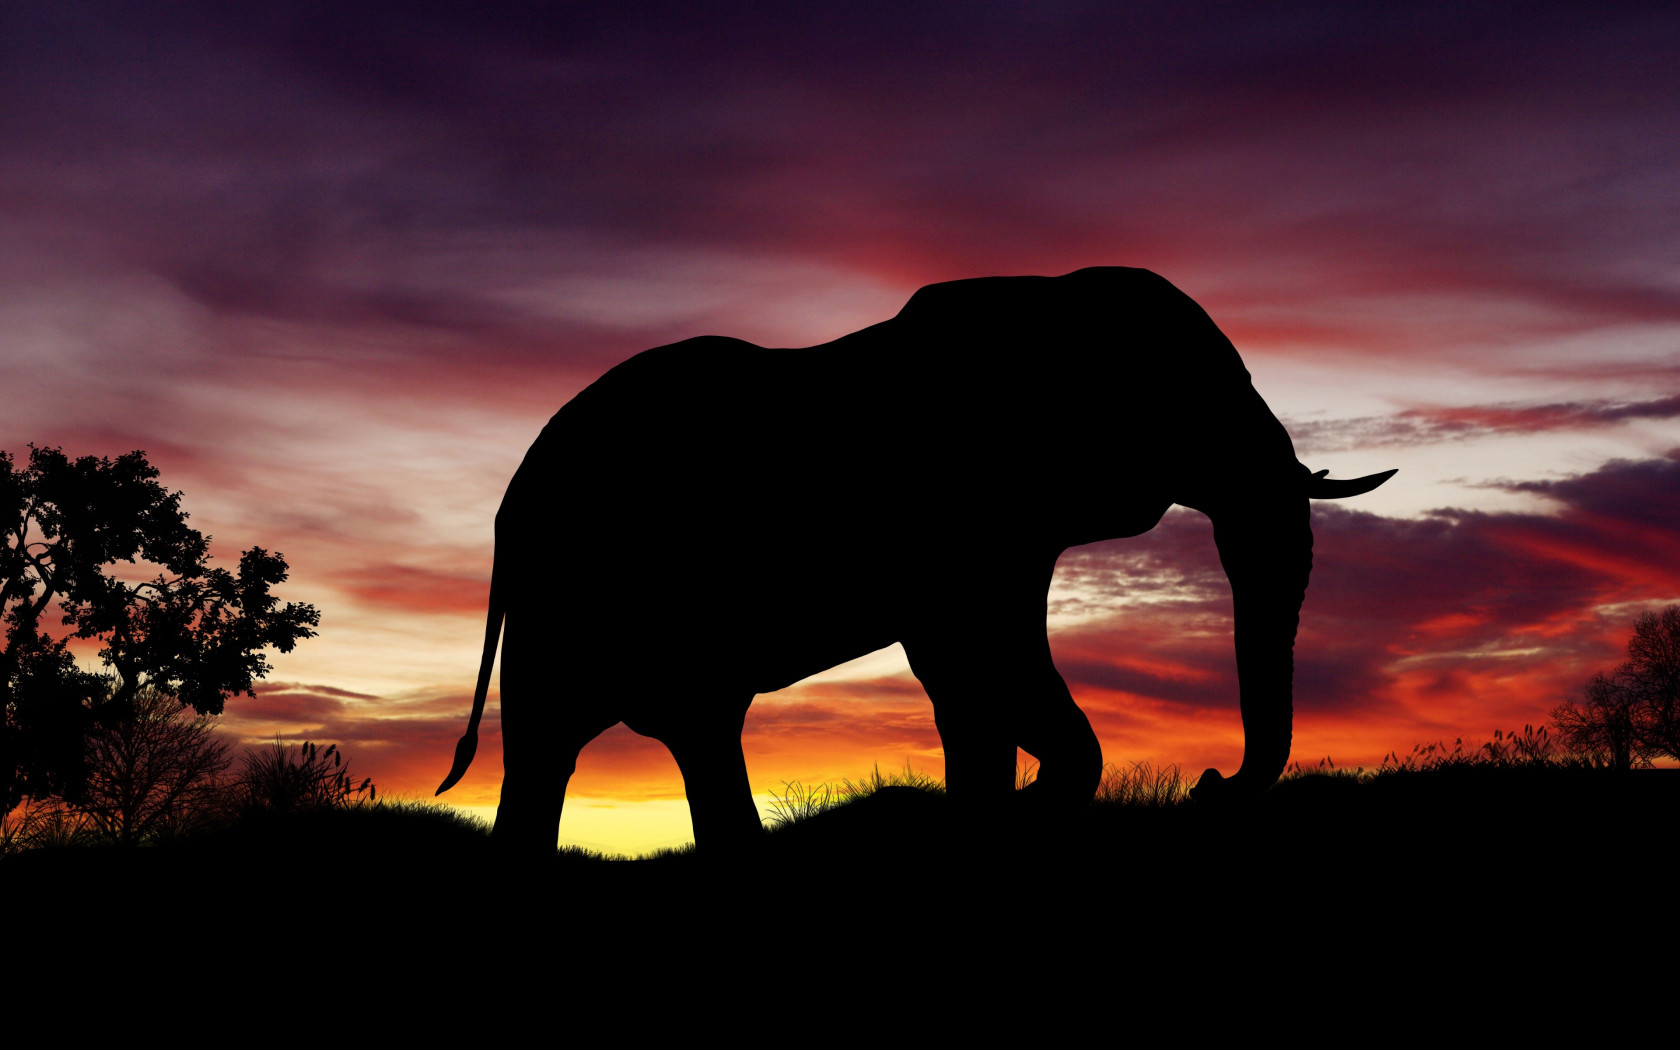 Elephant silhouette | 1680x1050 wallpaper